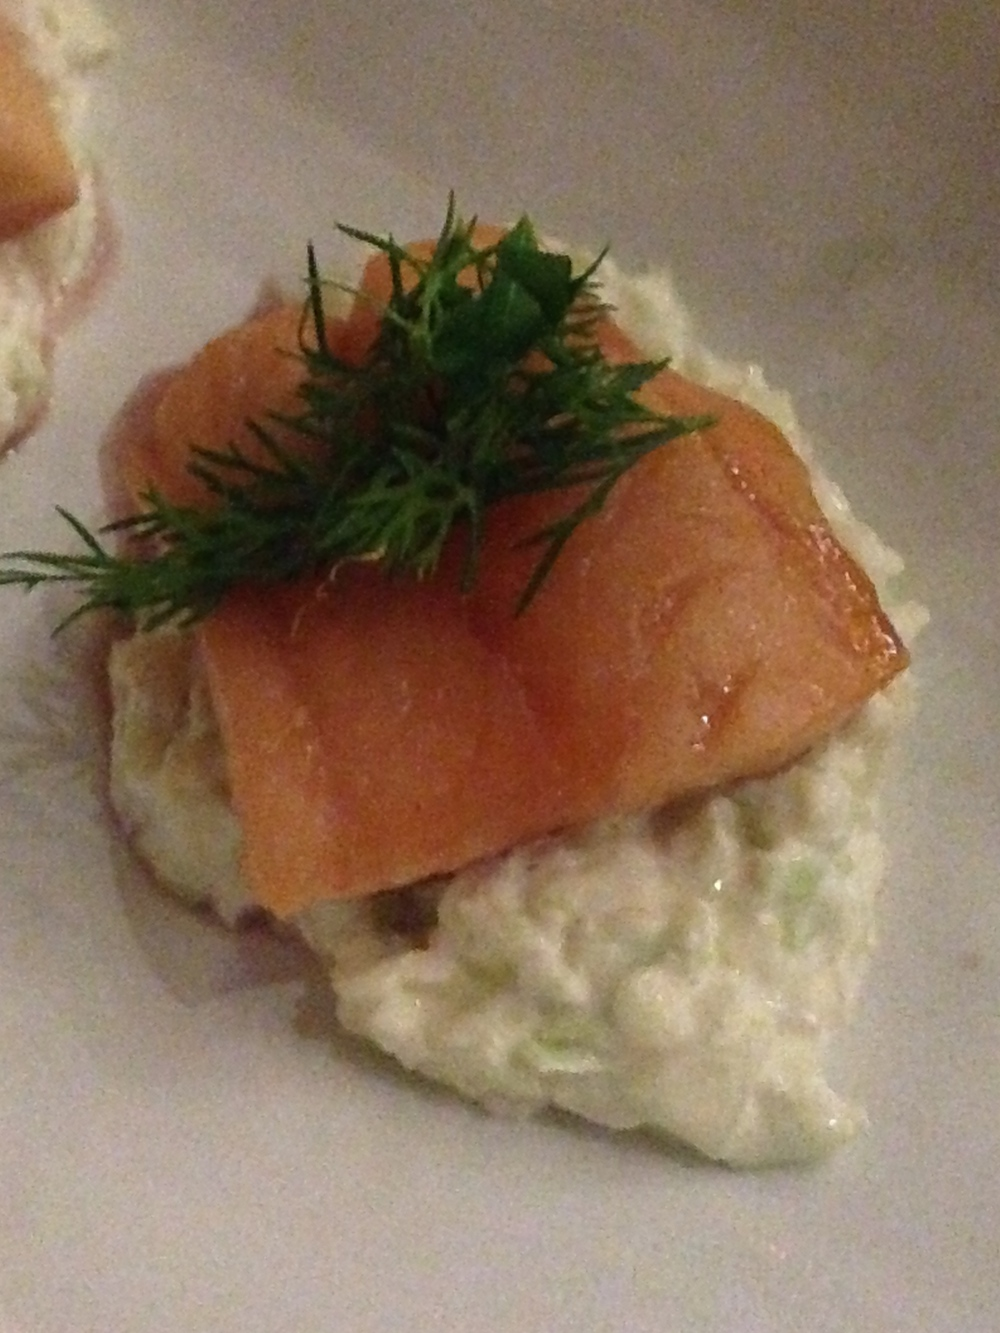 Fifth Course: Port glazed hot smoked salmon with fennel sesame seed salad